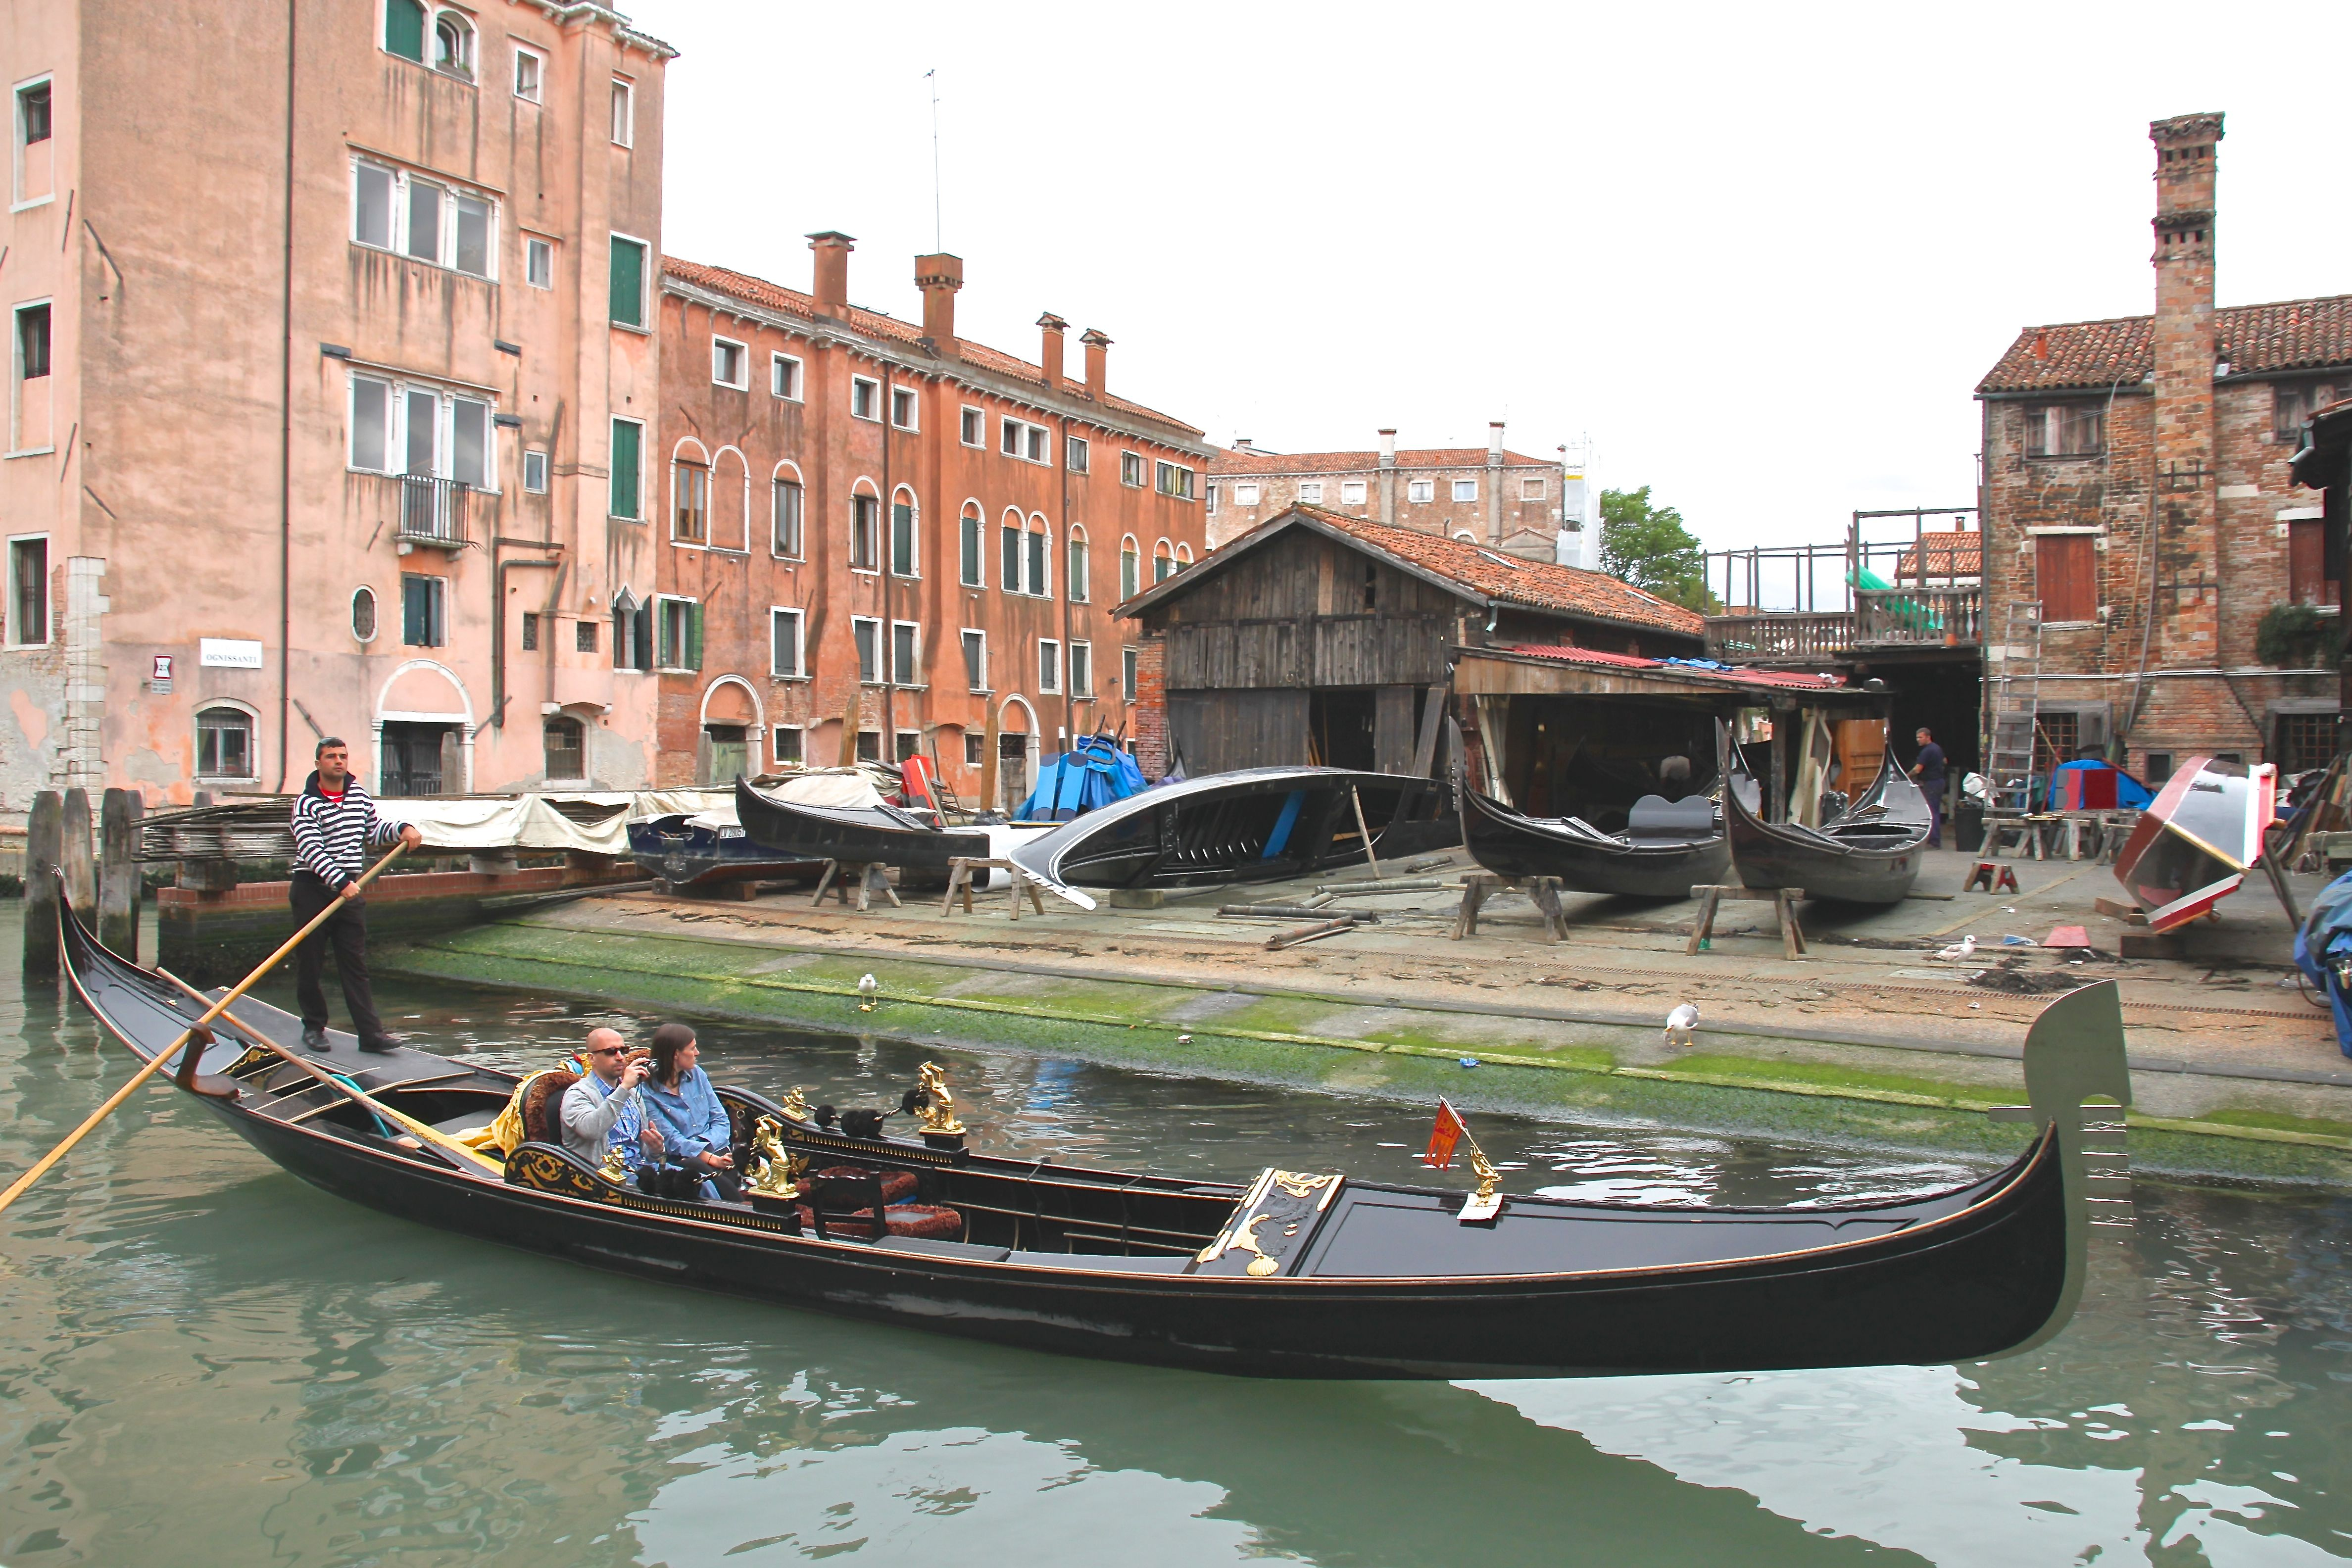 A classic gondola glides past one of the last remaining boatyards in the city